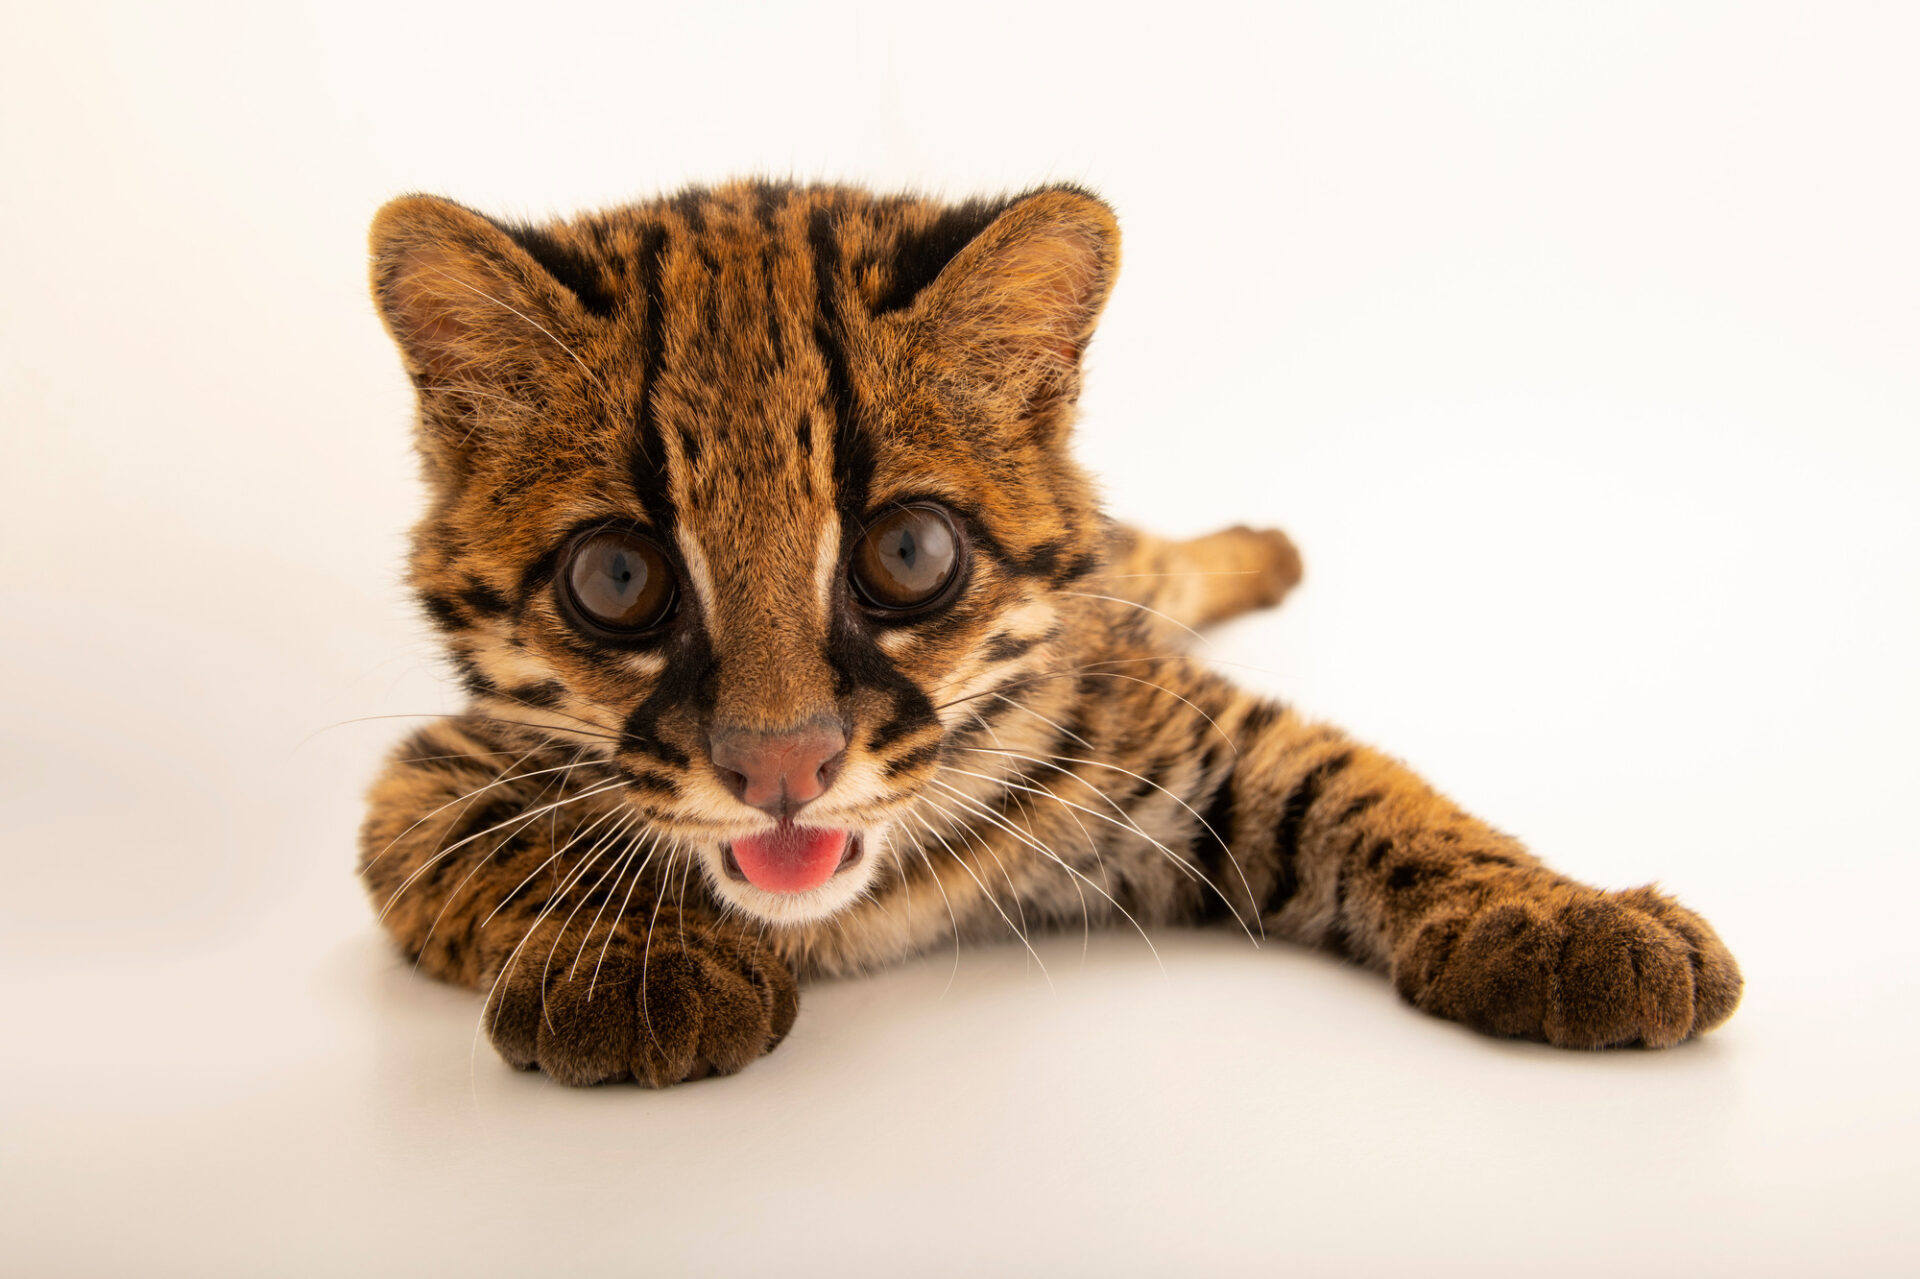 Photo: A margay (Leopardus wiedii pirrensis) named Diego, at Zoologico de Quito.